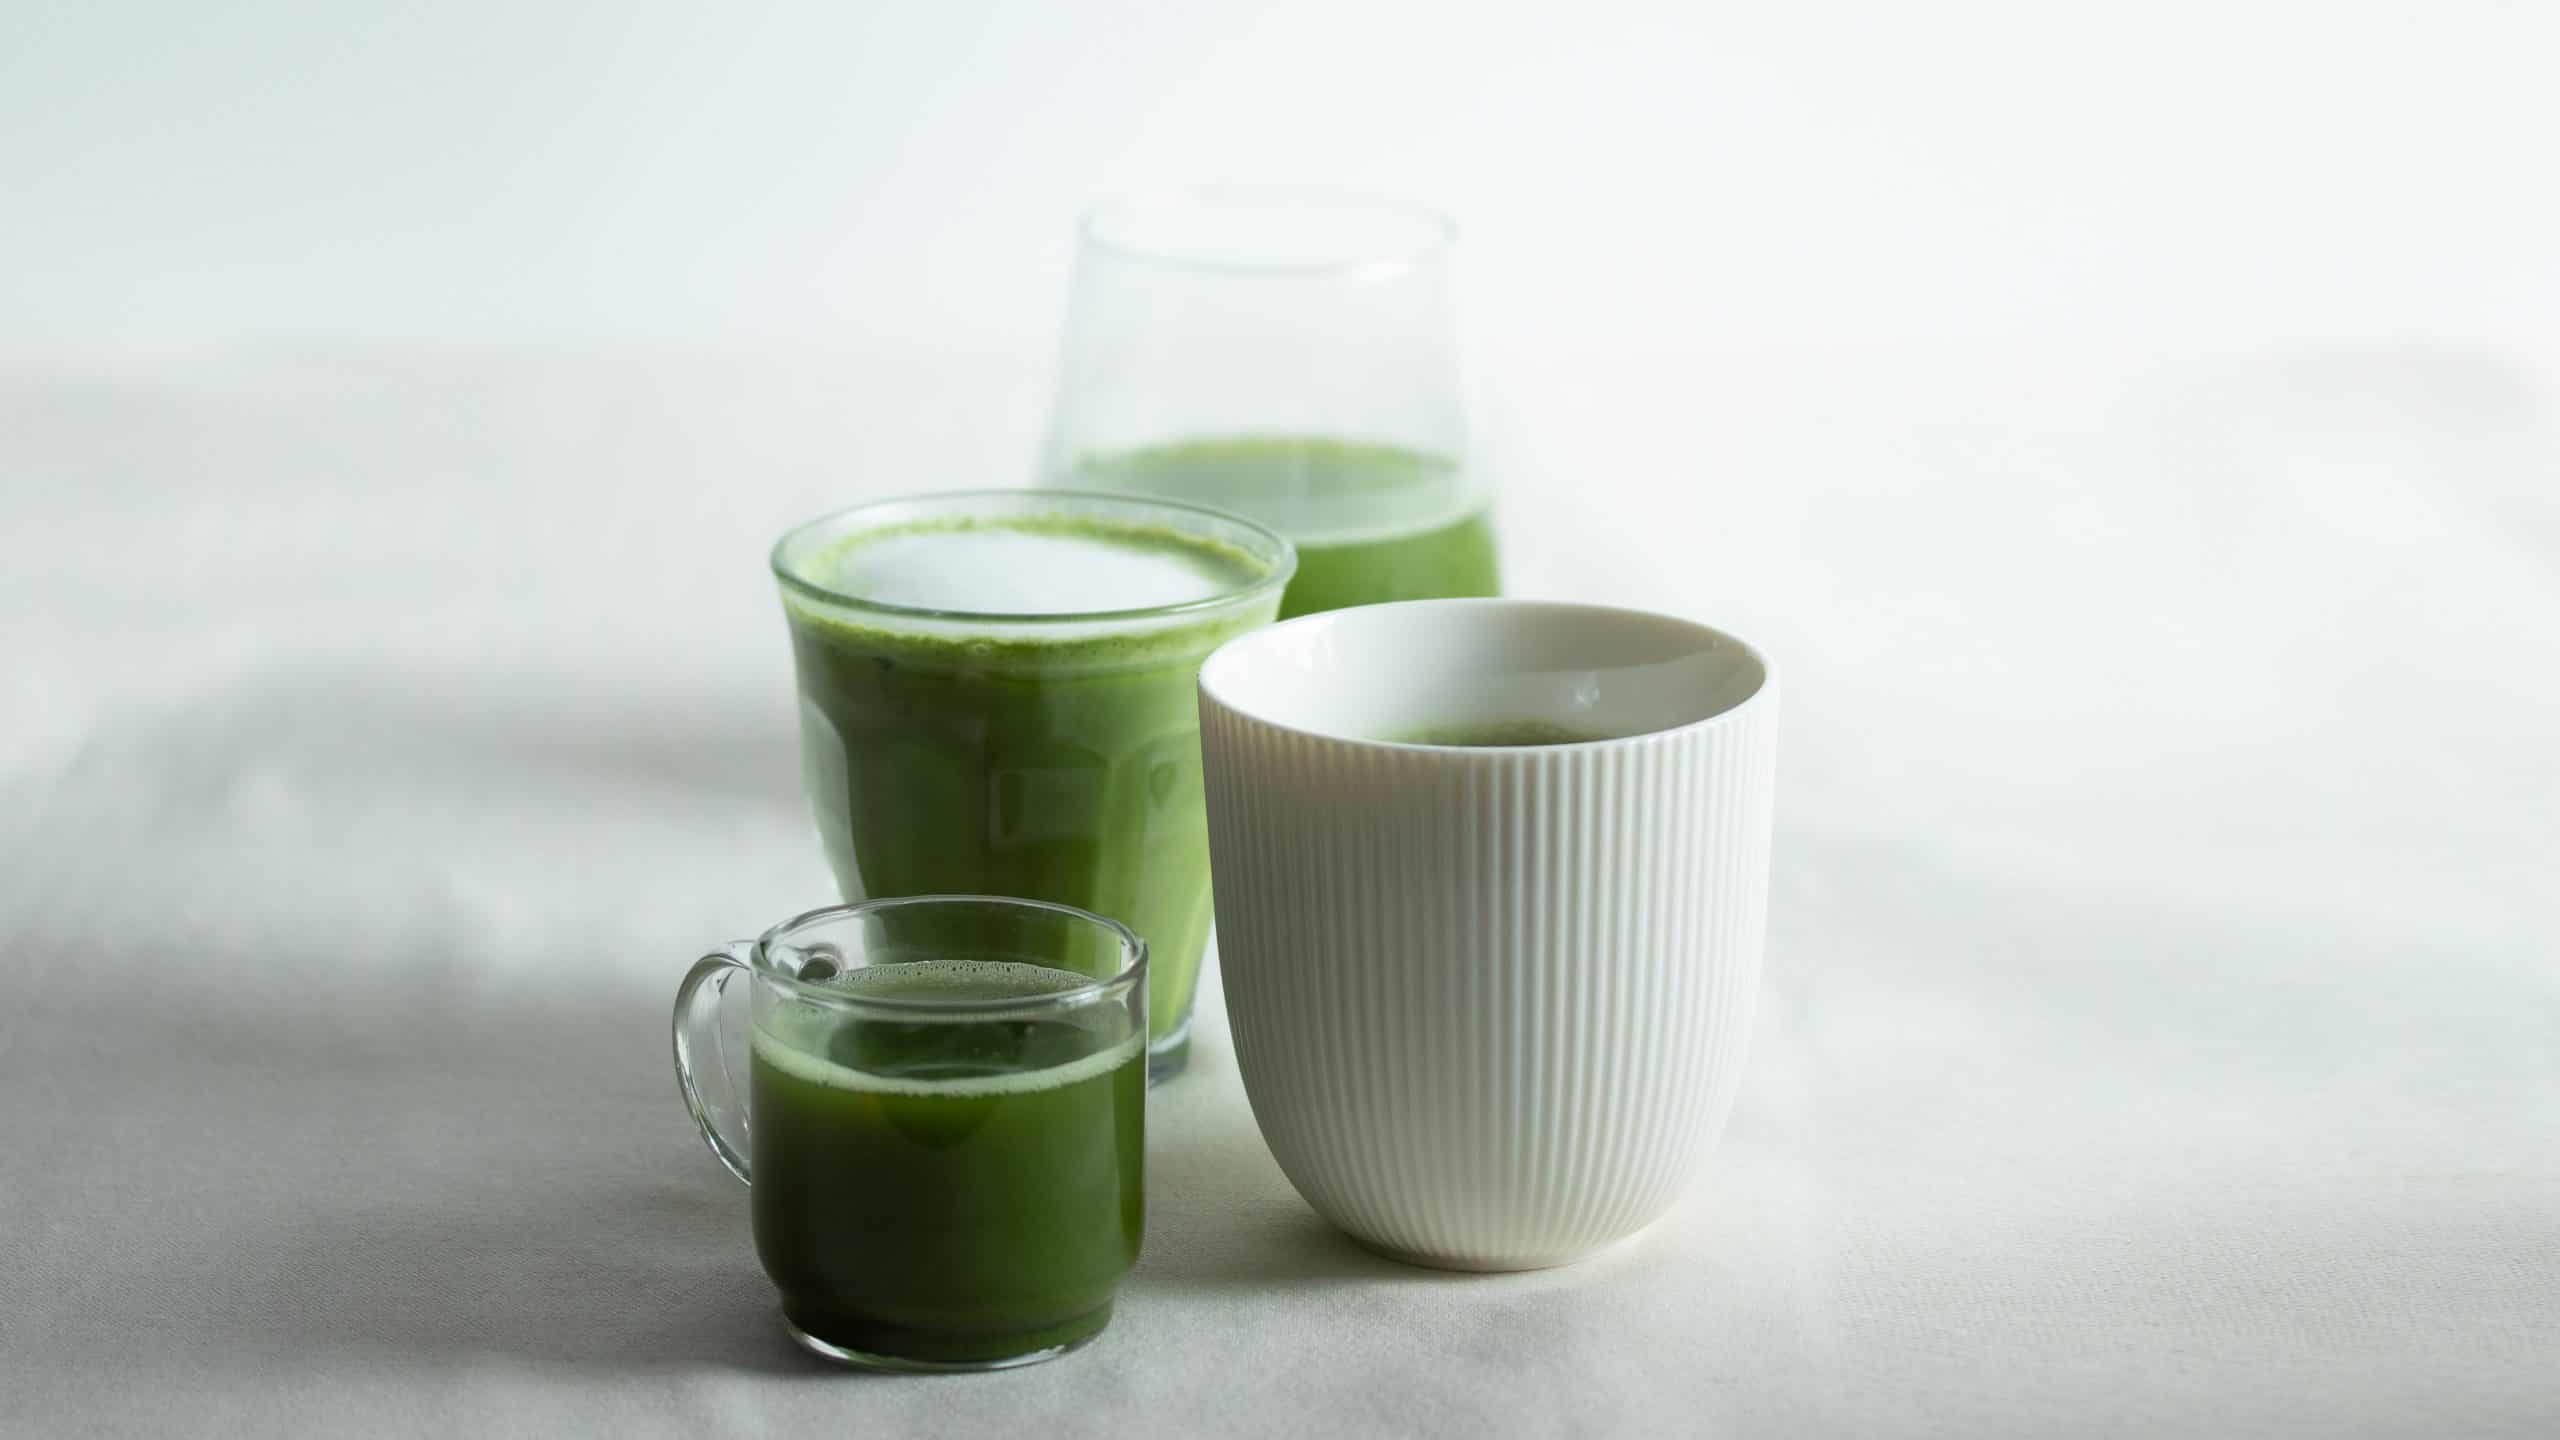 variations of matcha in different cups